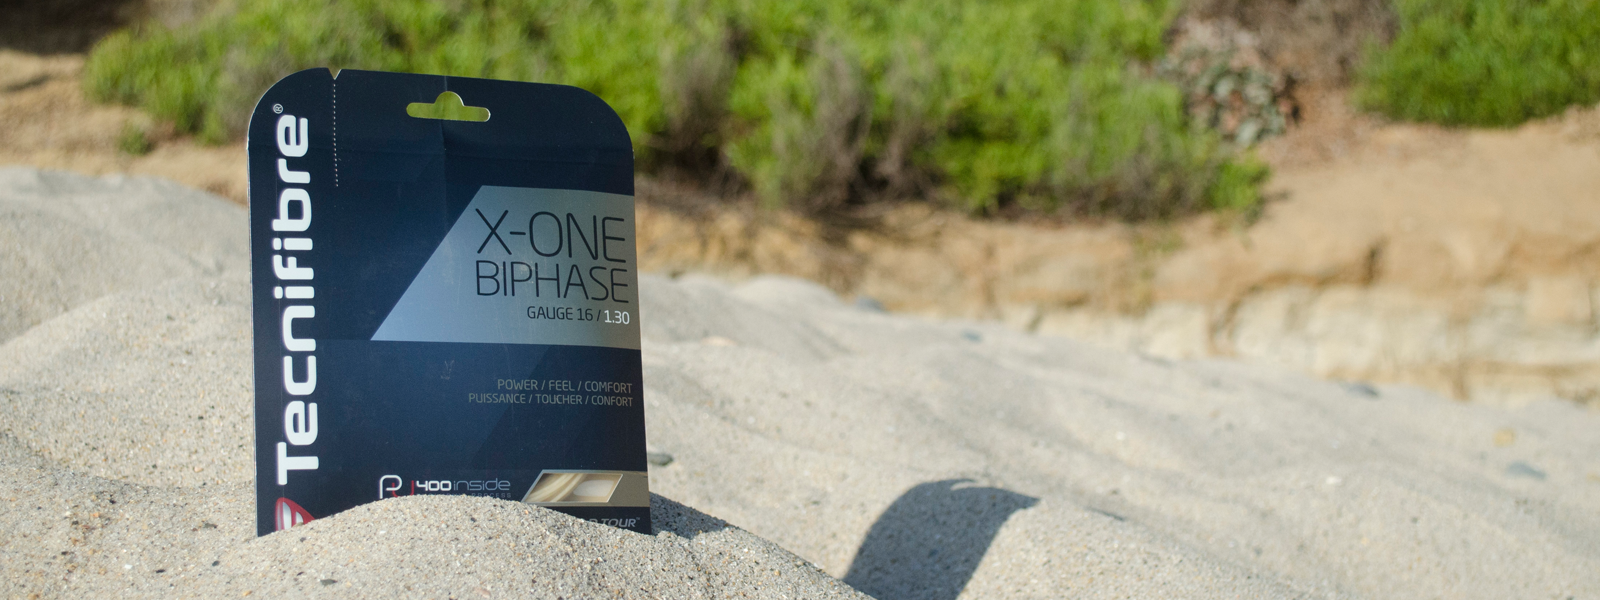 tecnifire_x_one_biphase_package_beach_home_page_1600_600_2